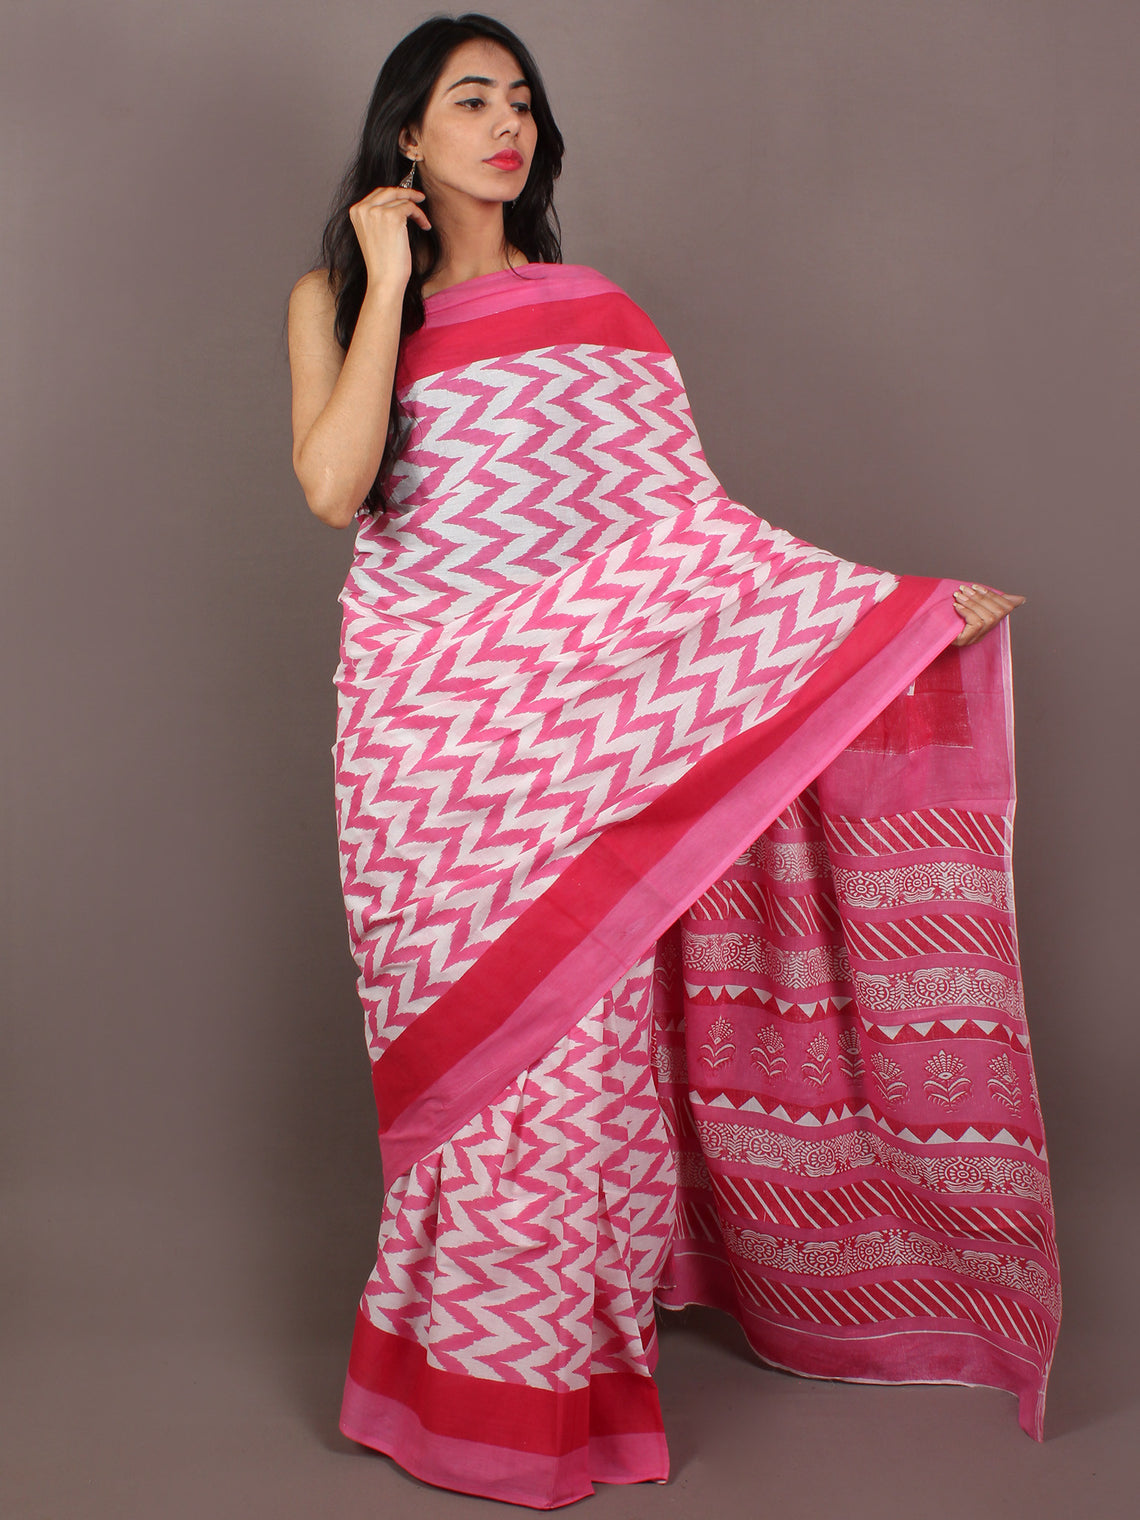 Pink Ivory Red Hand Block Printed in Natural Colors Cotton Mul Saree - S031701087